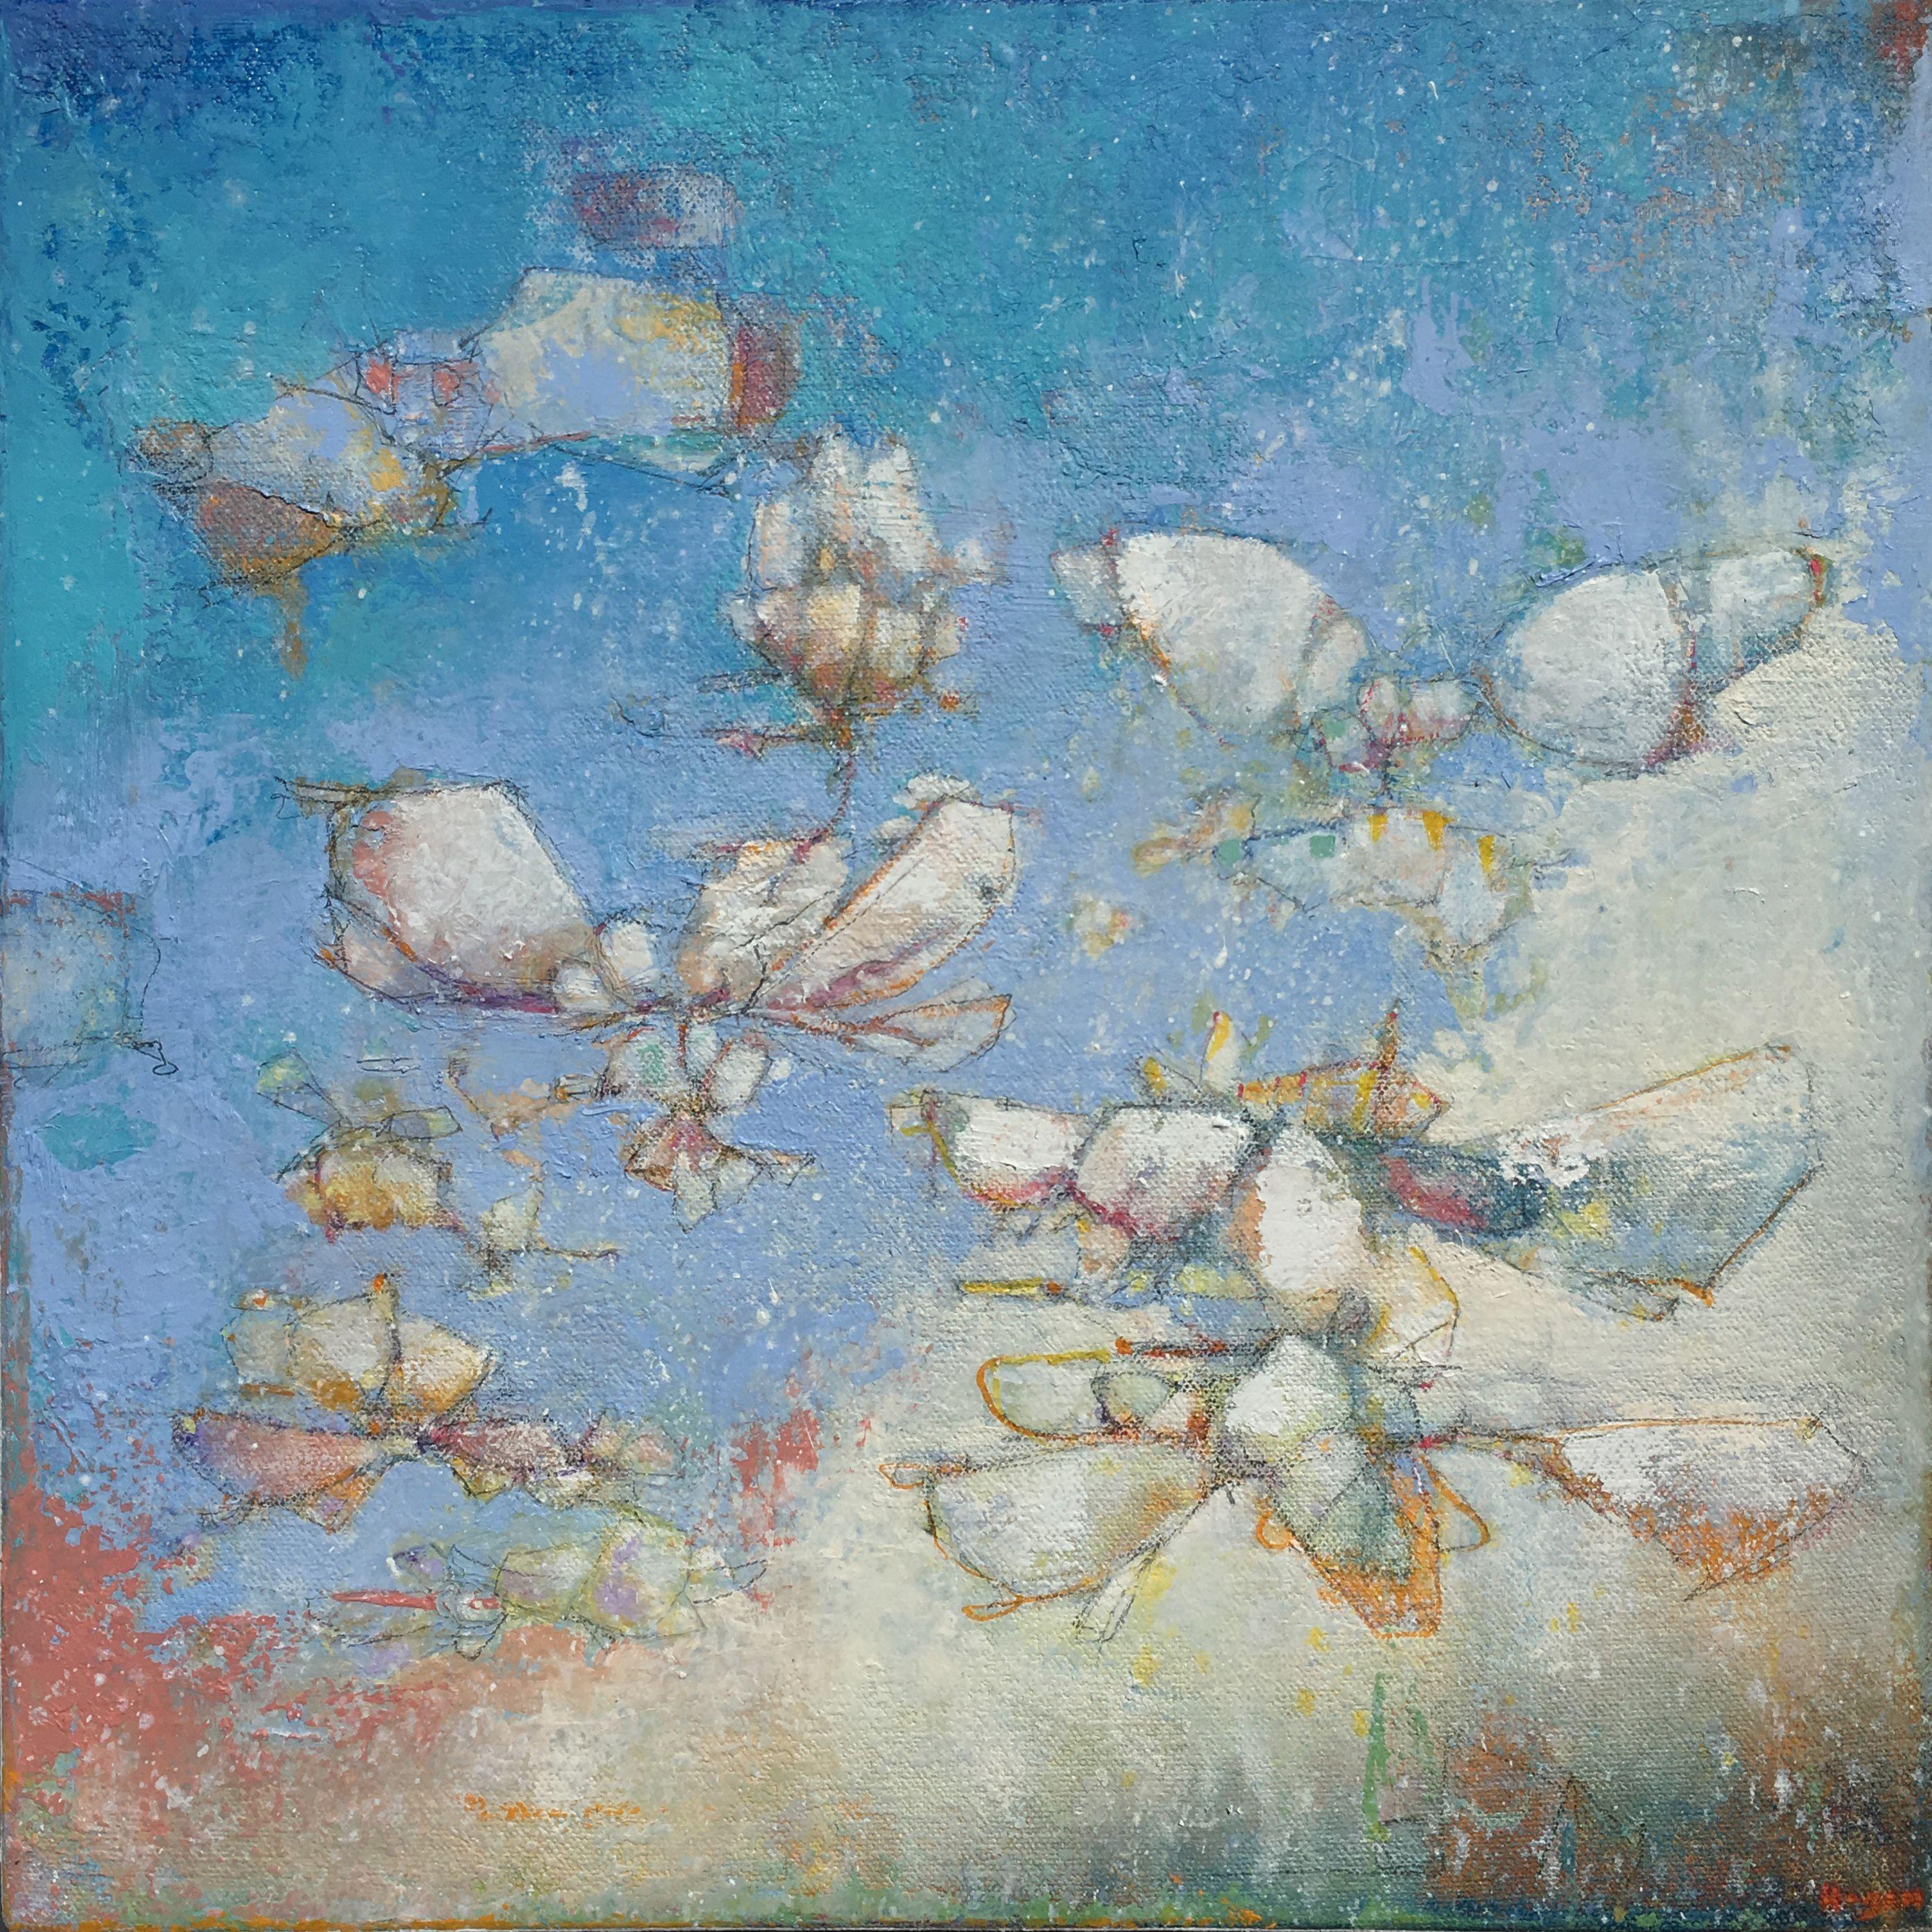 Flutter and Hum, Painting, Oil on Canvas